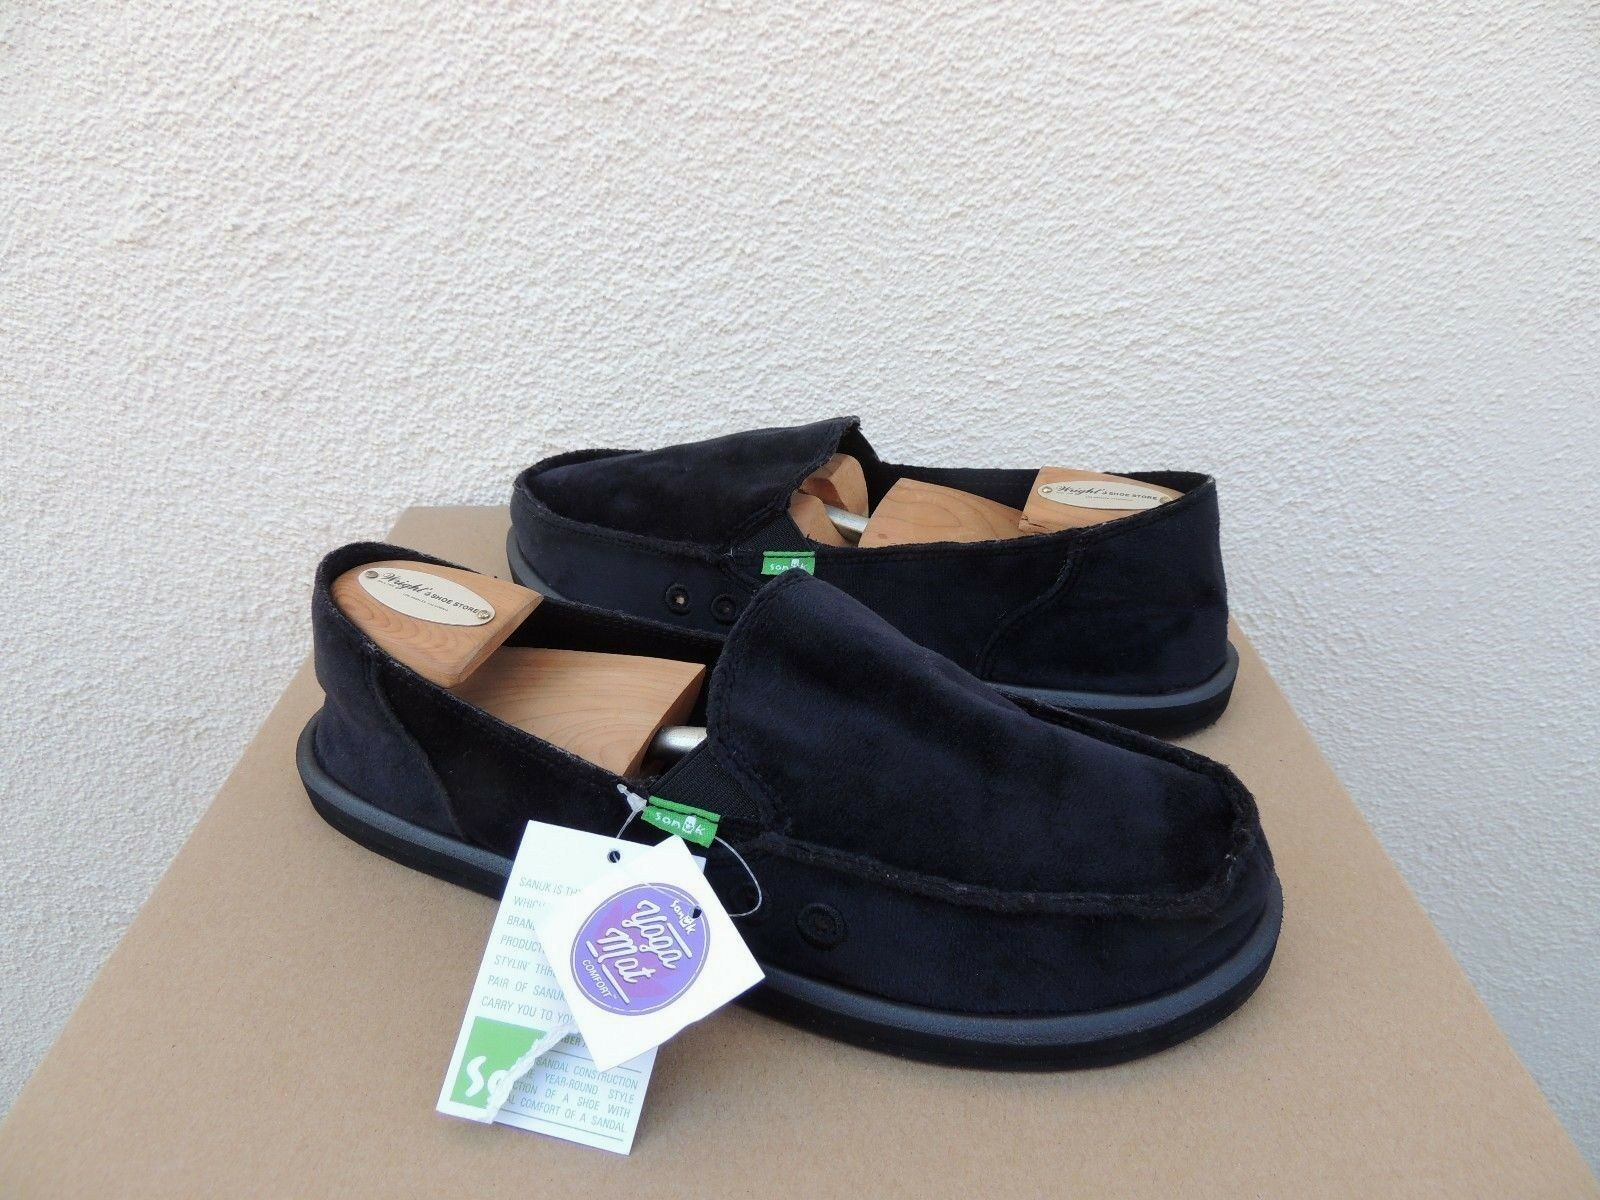 f2e0ab3f913 Sanuk Black Donna Velvet Sidewalk Surfer Shoes Women US 7  EUR 38 ...